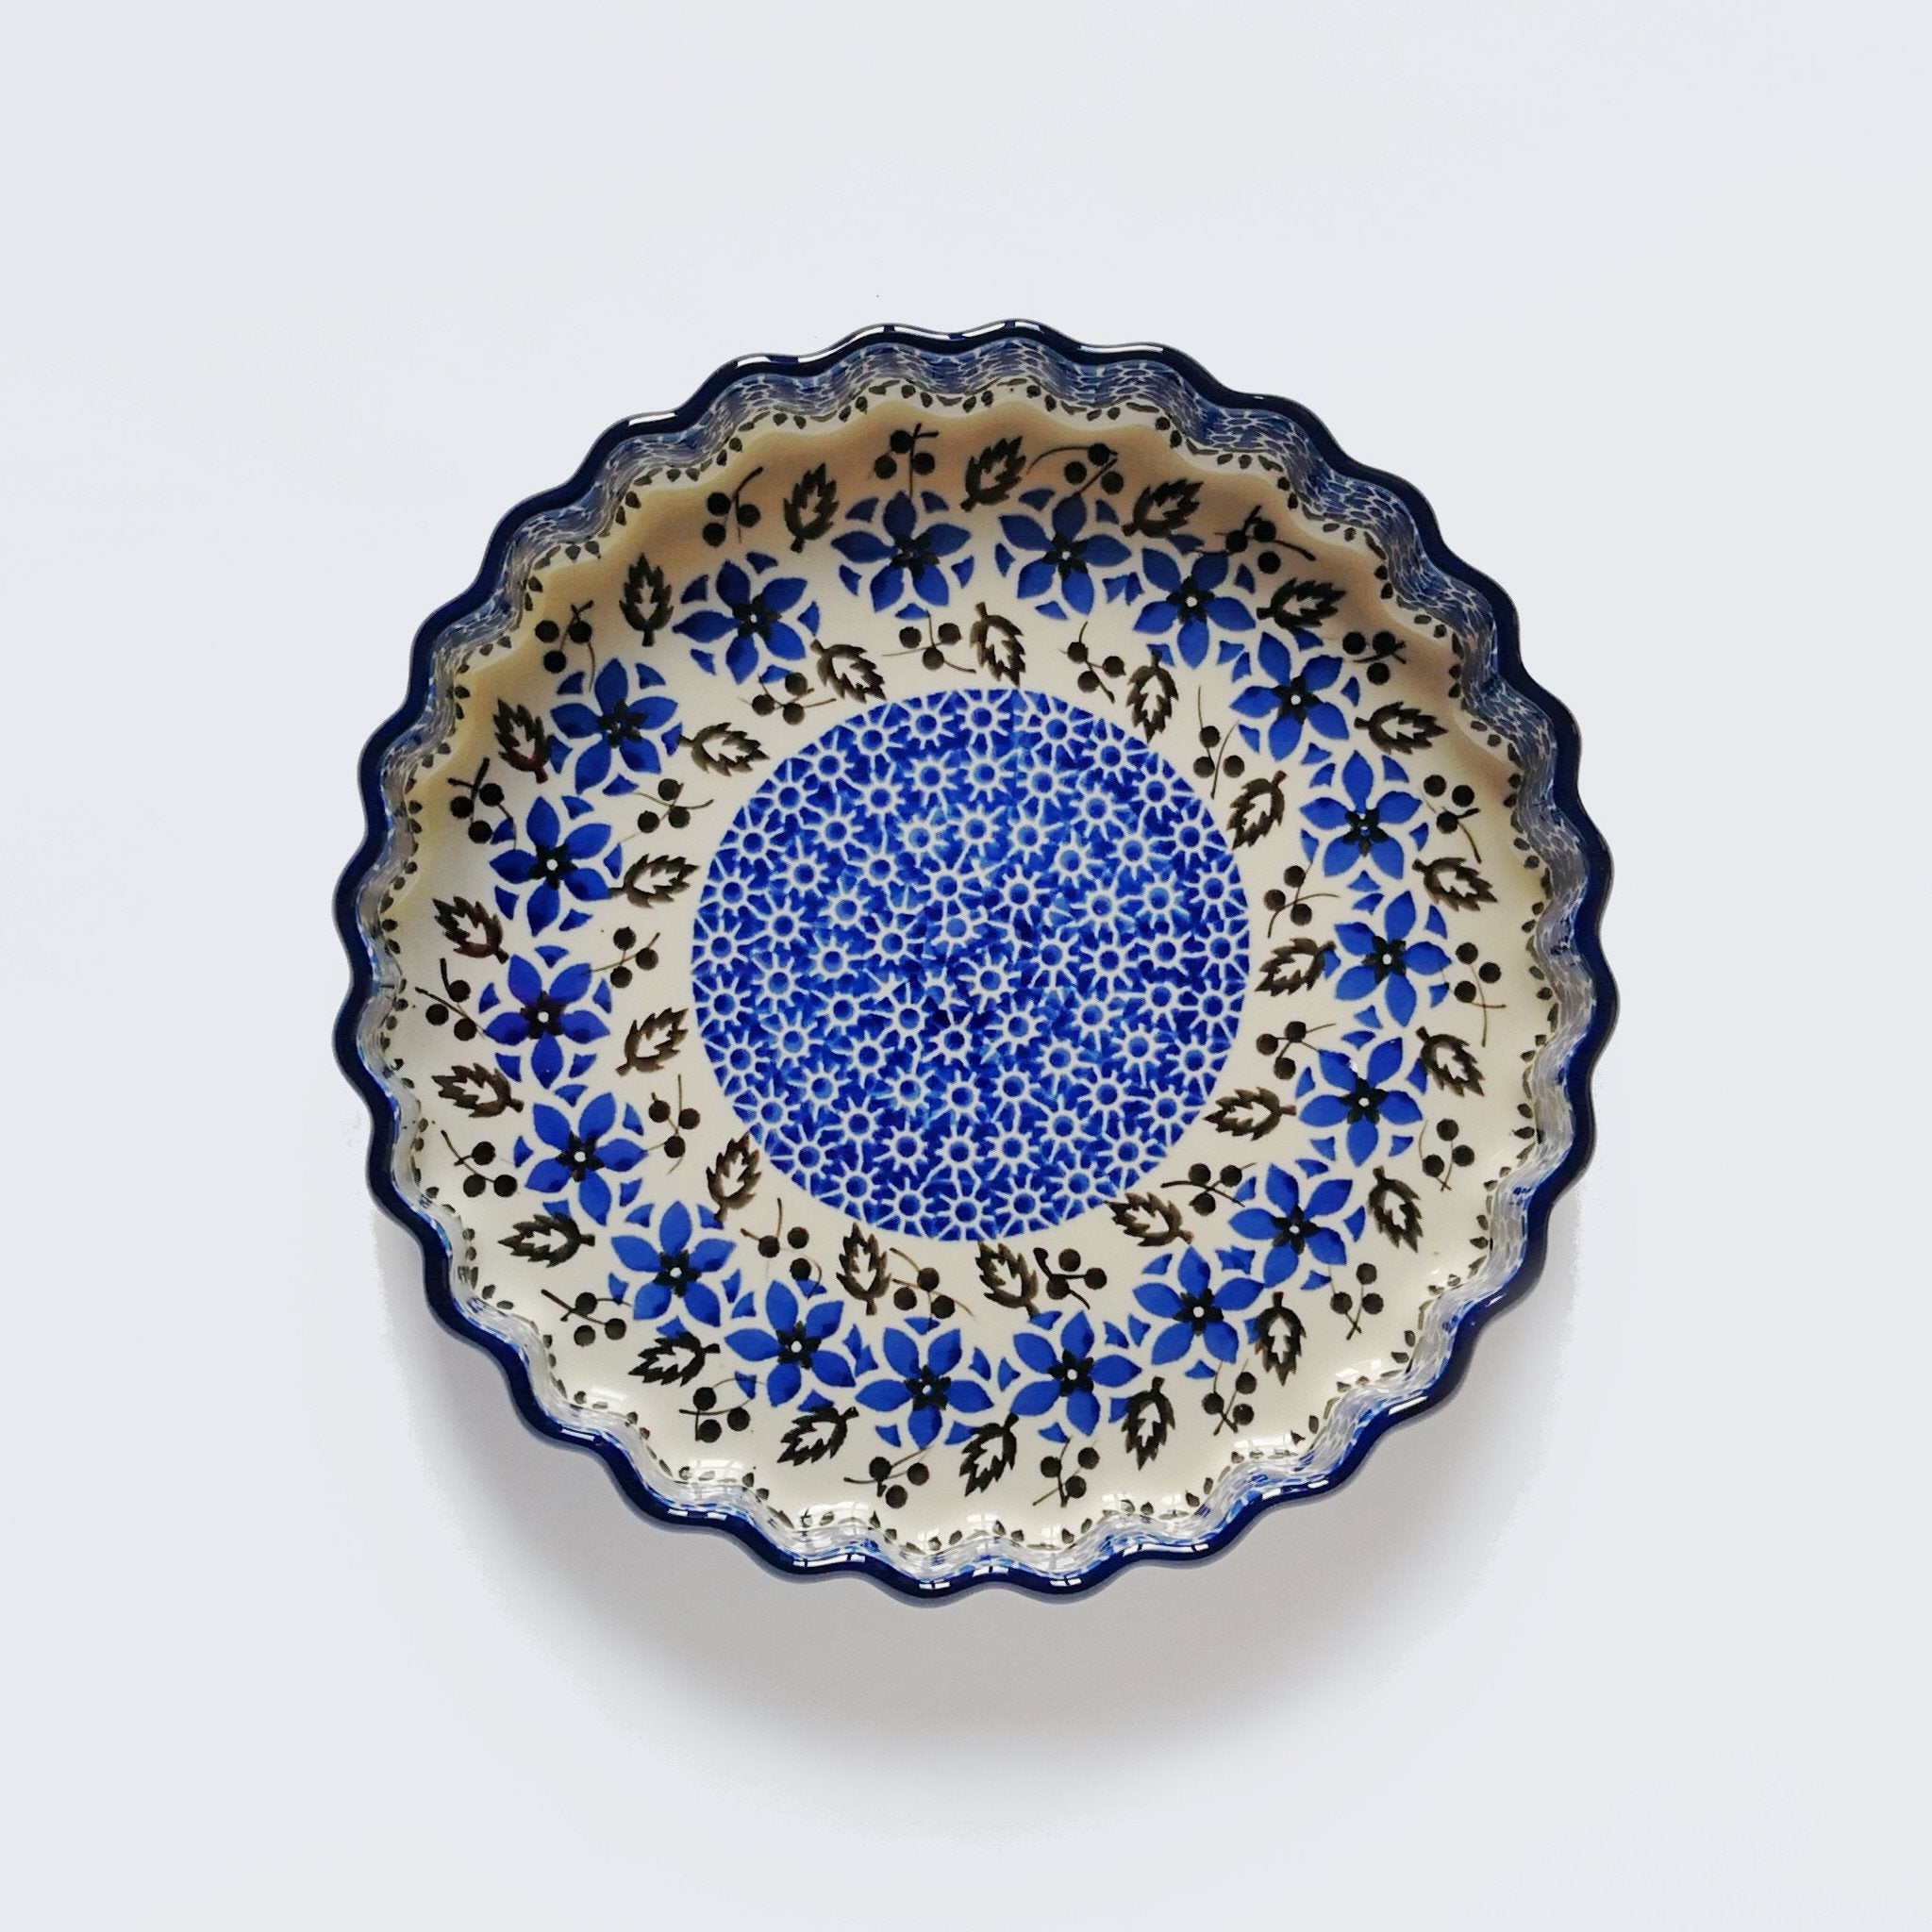 Boleslawiec Stoneware Fluted Pie Dish in Blue and White Hand-decorated design